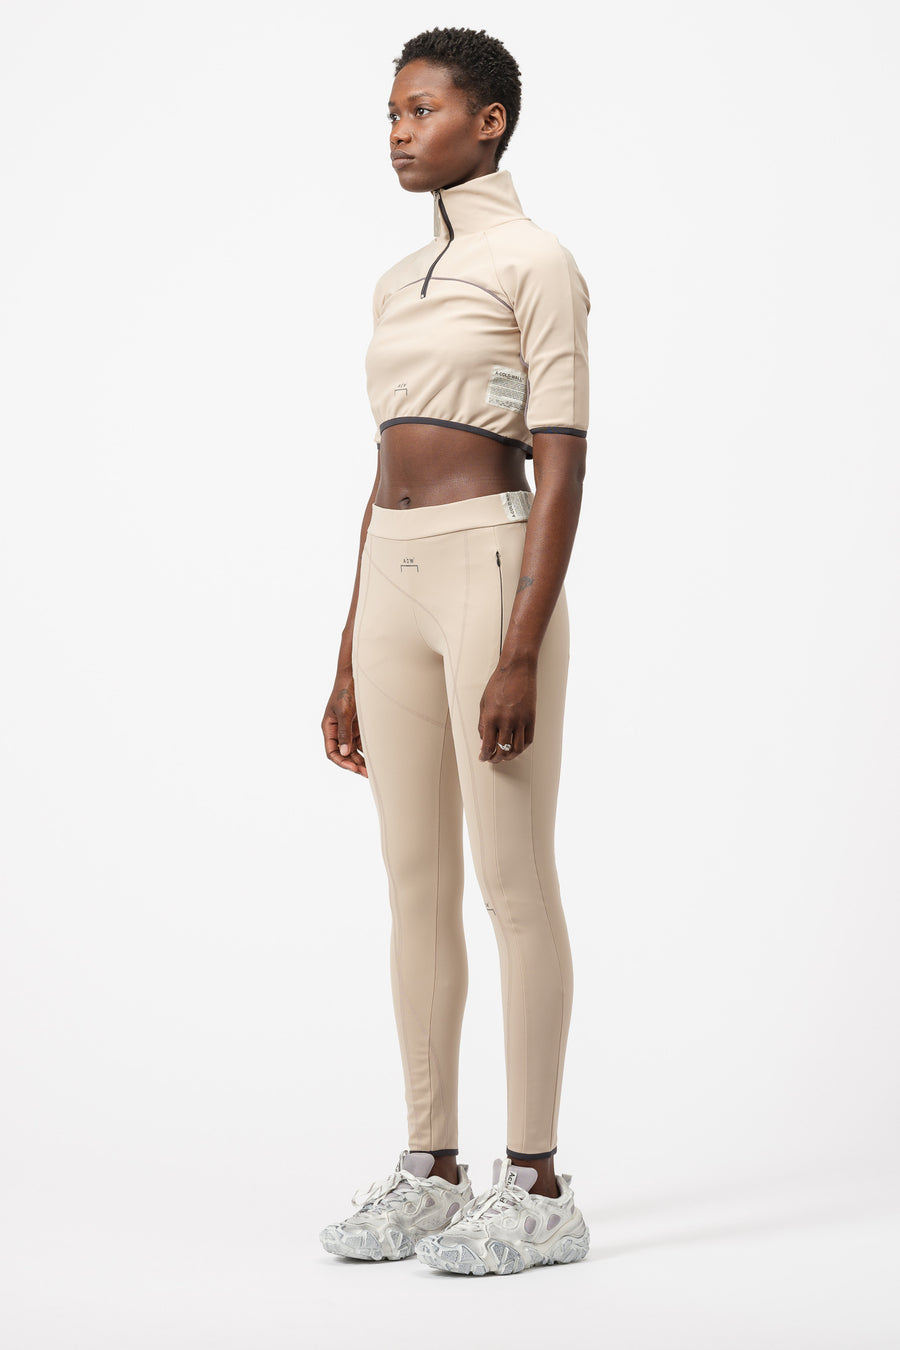 A-COLD-WALL* Overlock Leggings in Cream - Notre